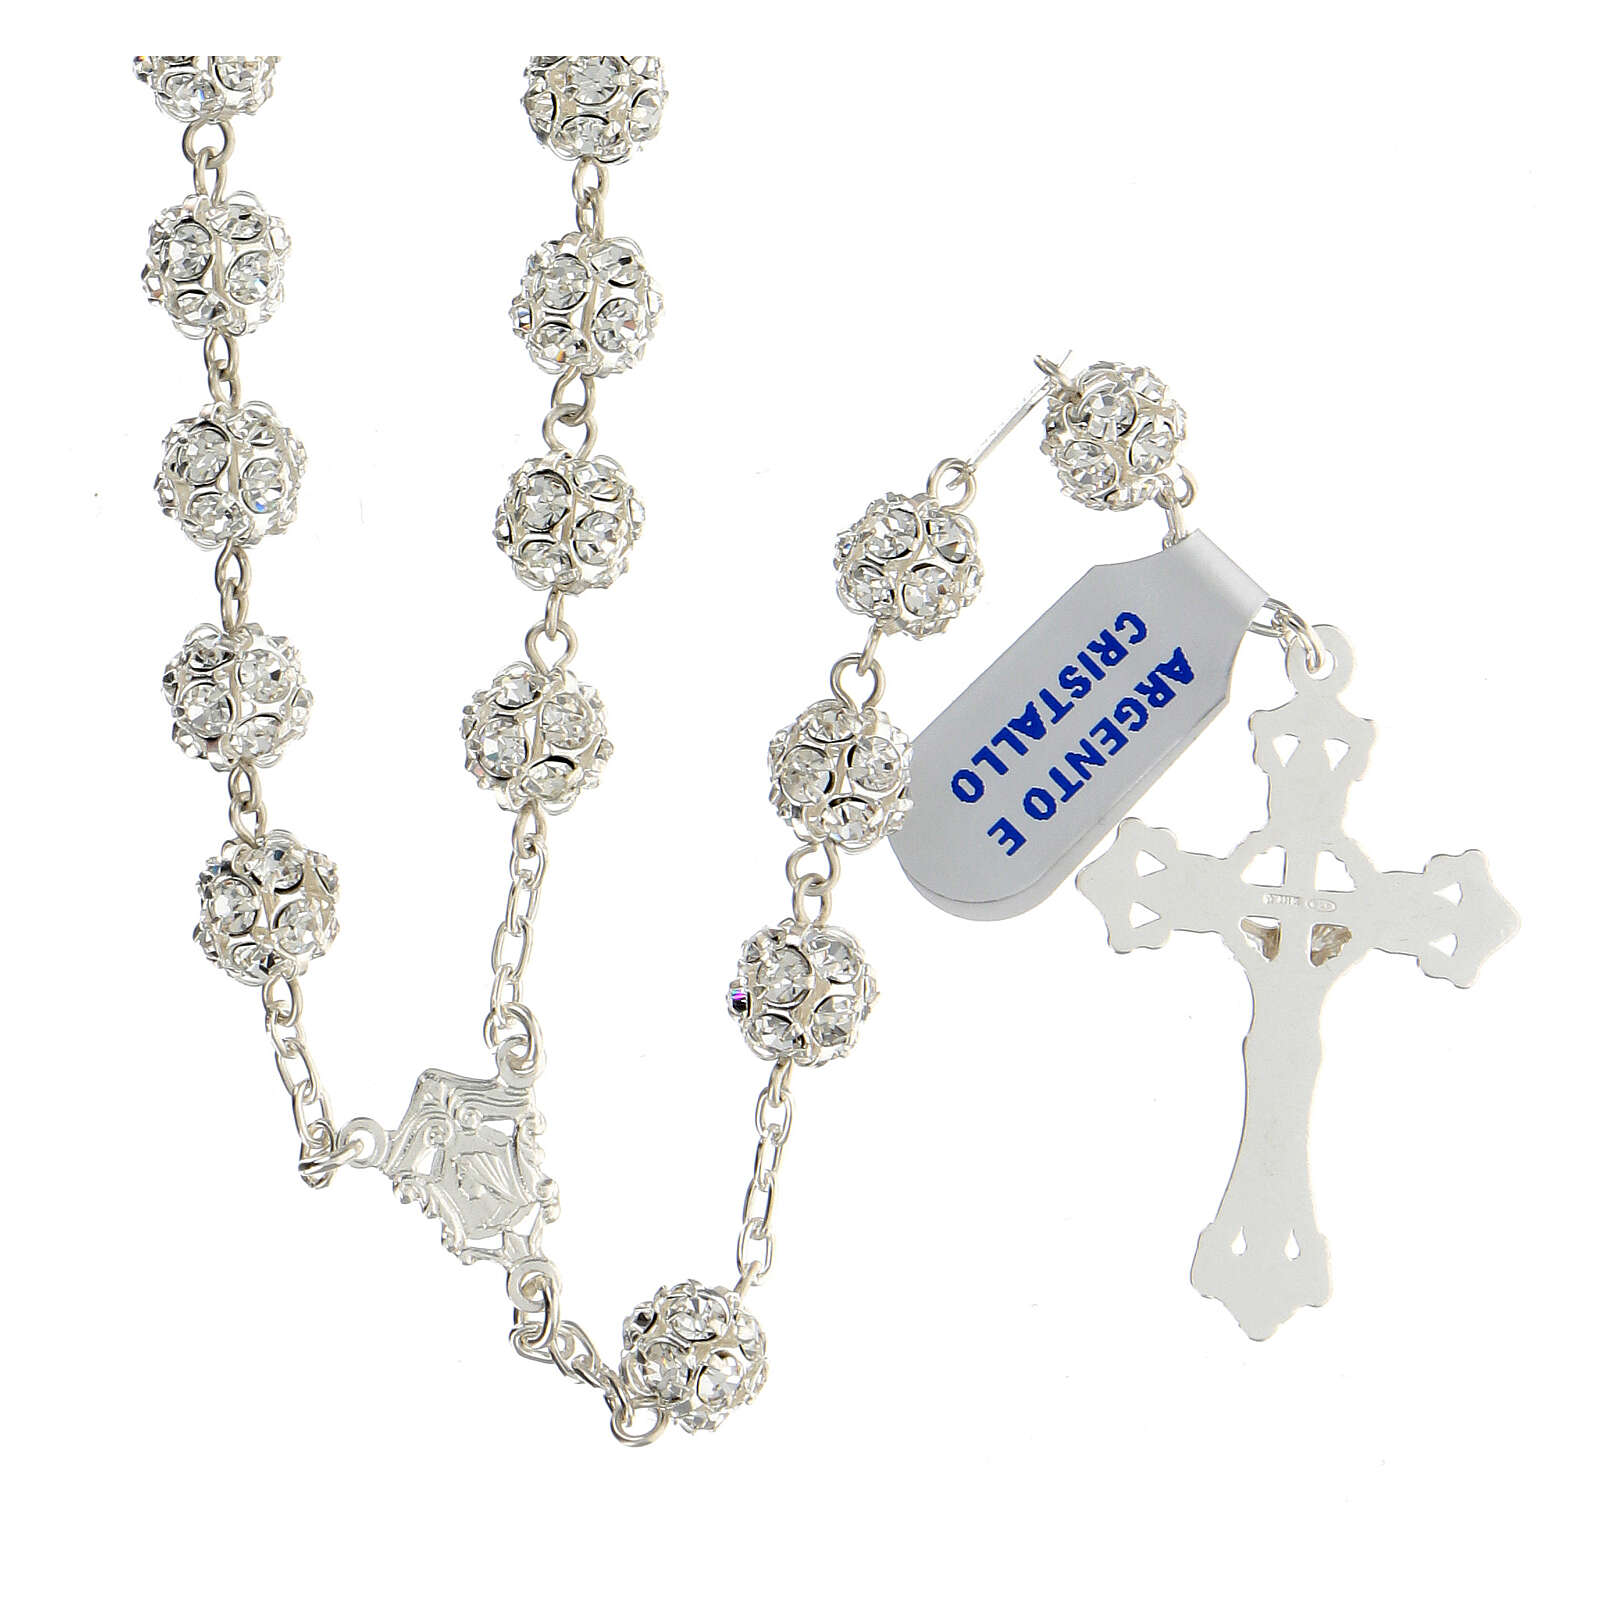 Rosary beads in 925 silver with 8mm beads encrusted with Swarovski crystals 4